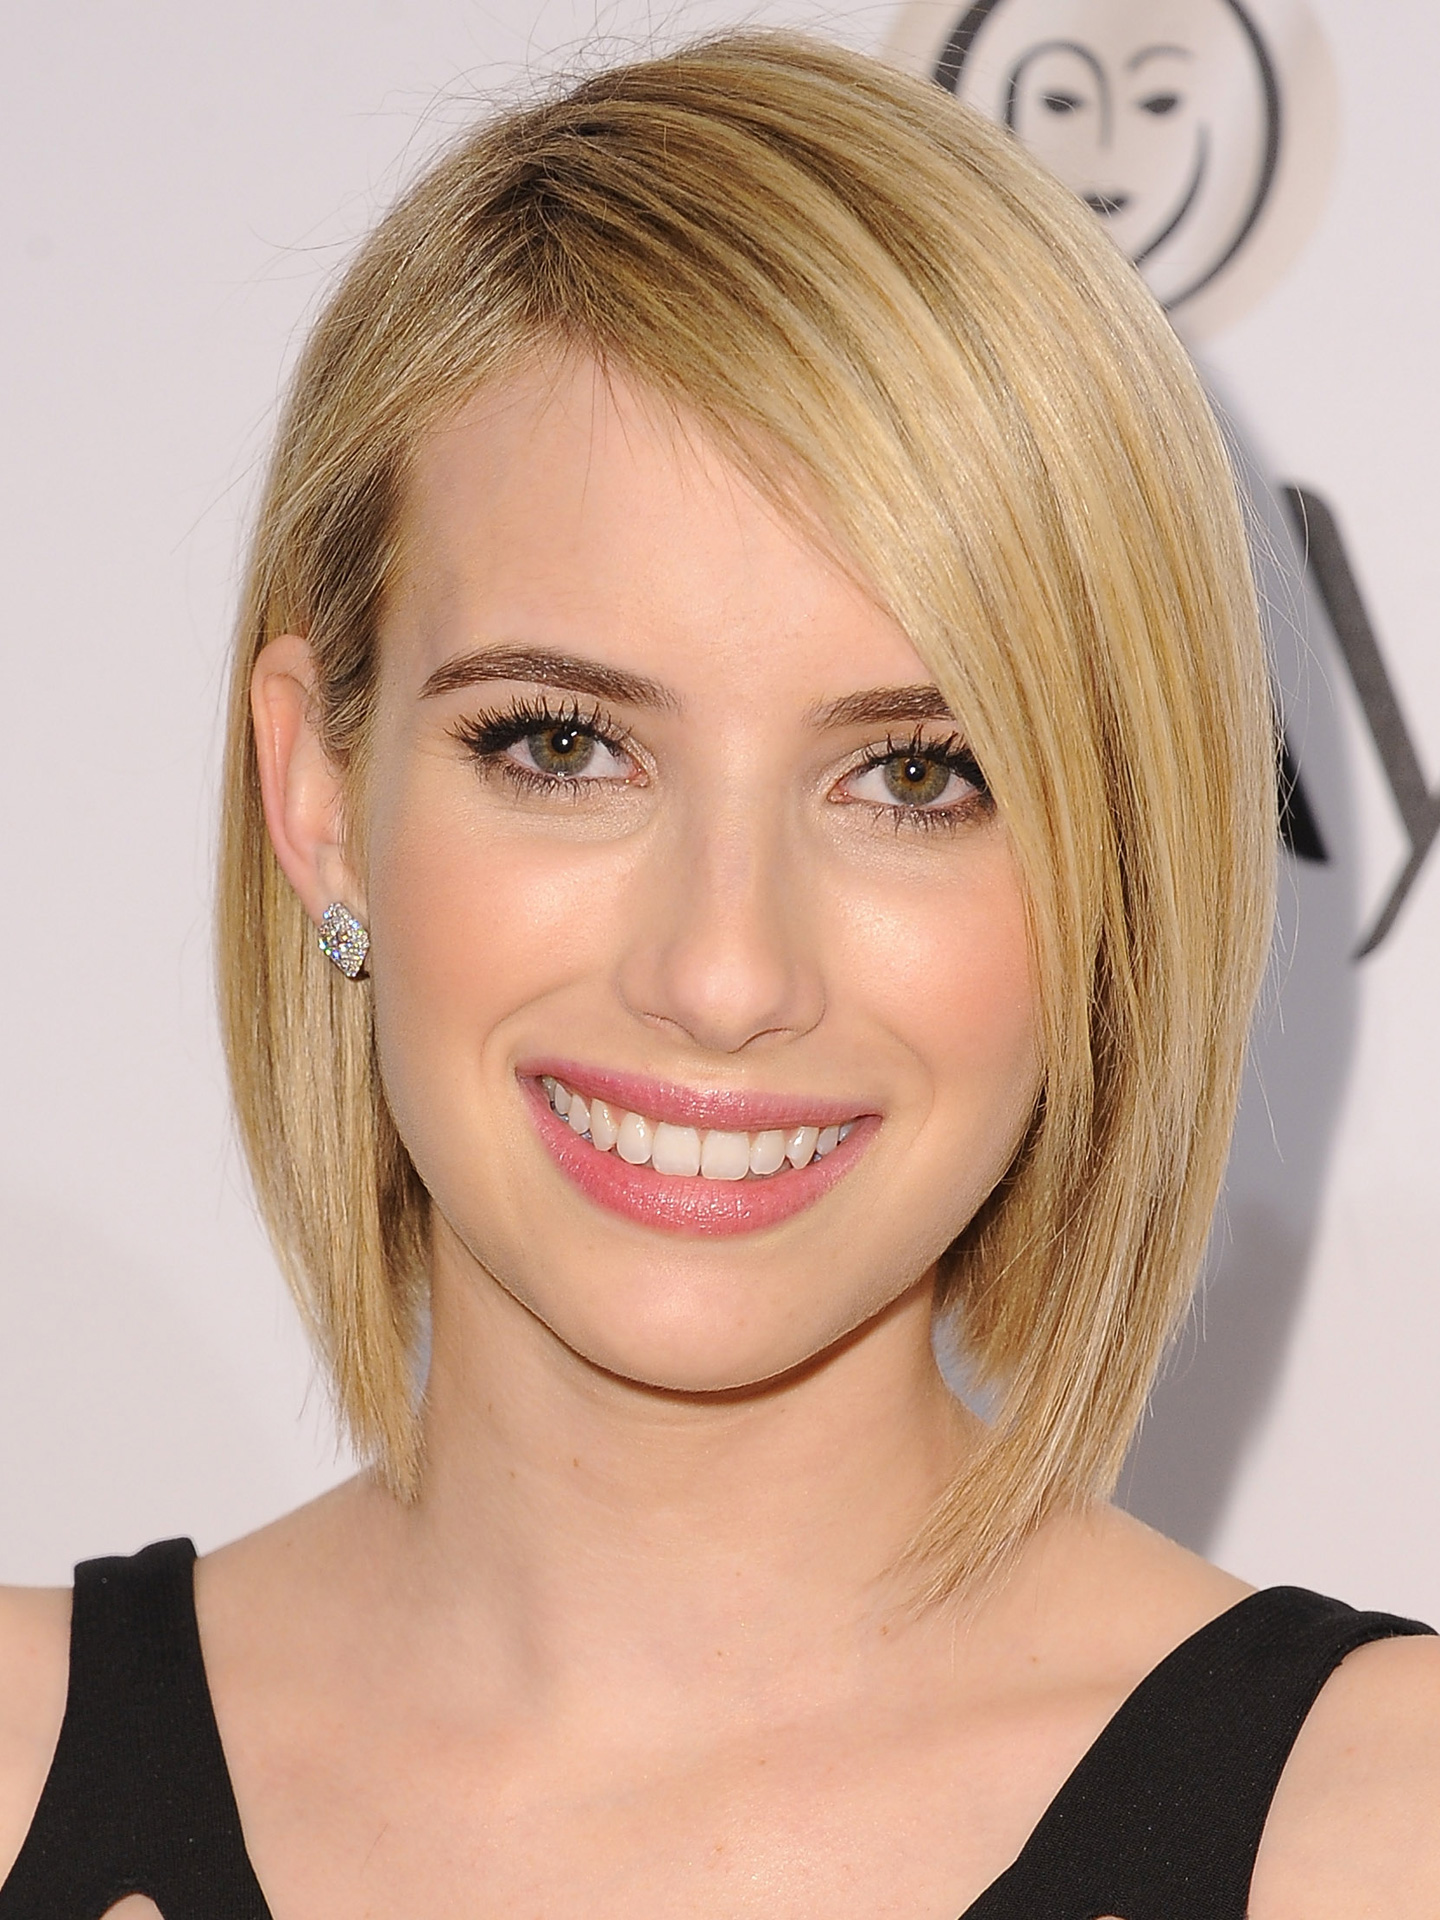 Surprising Which Short Haircut Should I Get Quiz Perfect Short Haircut For Me Short Hairstyles Gunalazisus